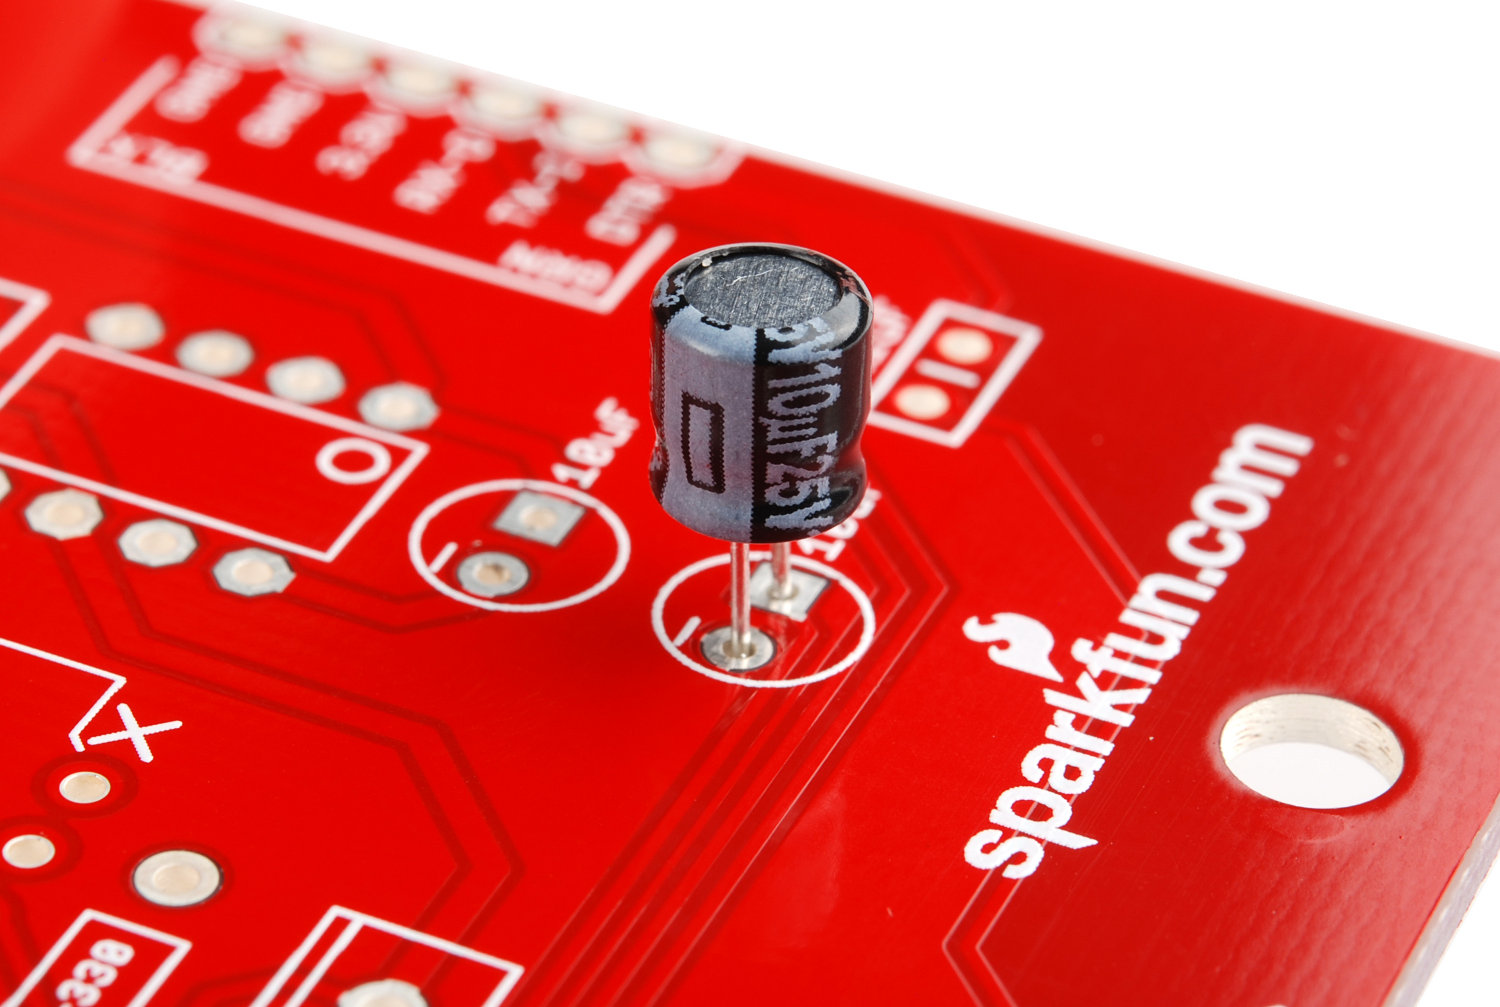 Assembly Sparkfun Fabfm Kit Wiki Github Capacitors Electronic Snap Circuits You Can Match Each Polarized Capacitor With Its Place On The Board By Referring To Component Value Label Red And Looking At